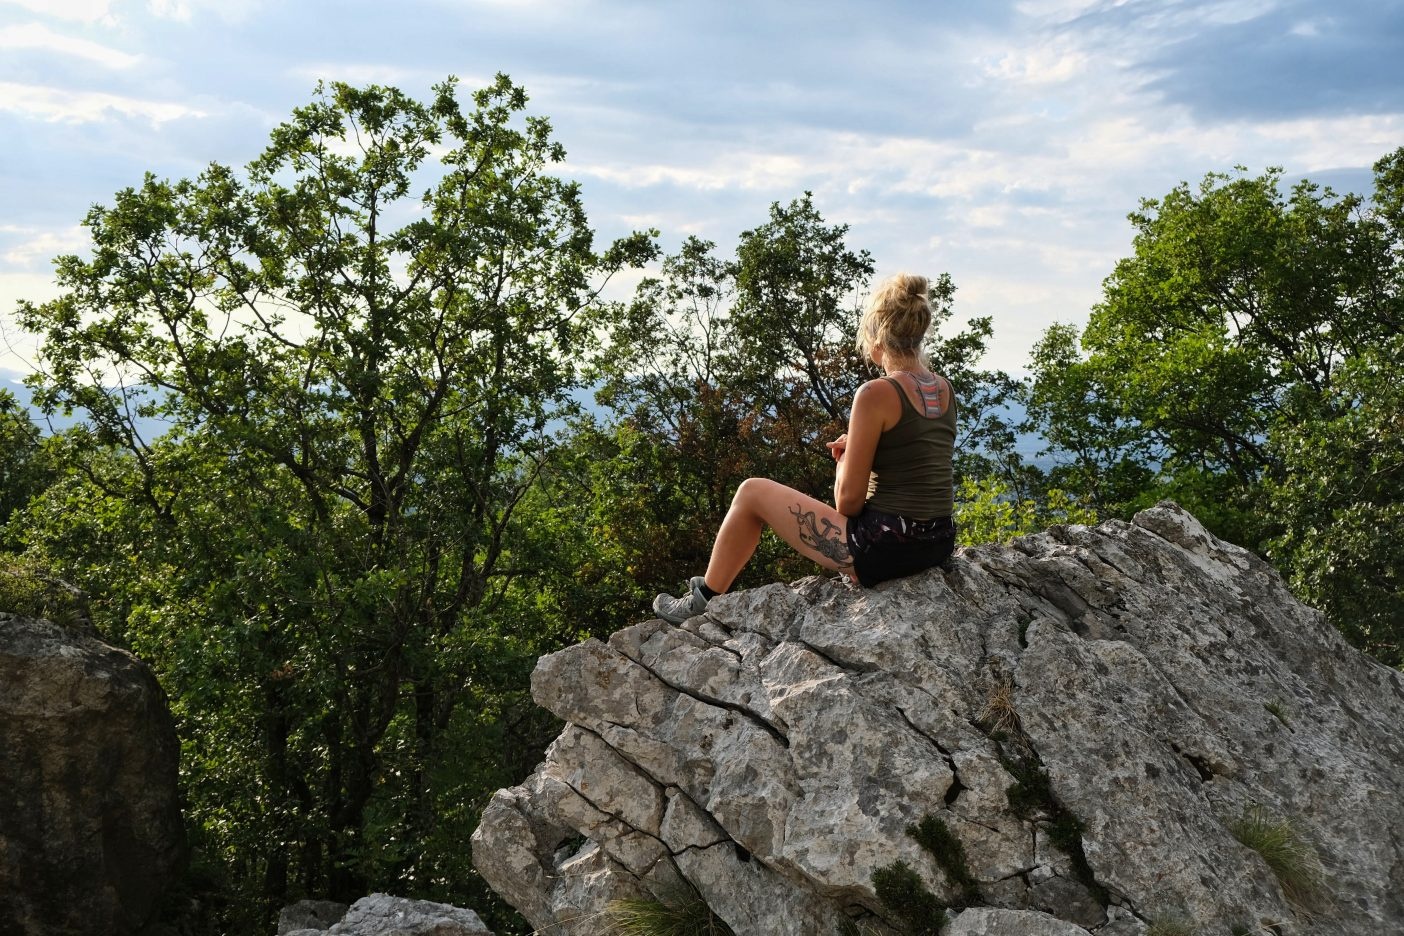 Girl in the mountains on hiking trip sitting in nature